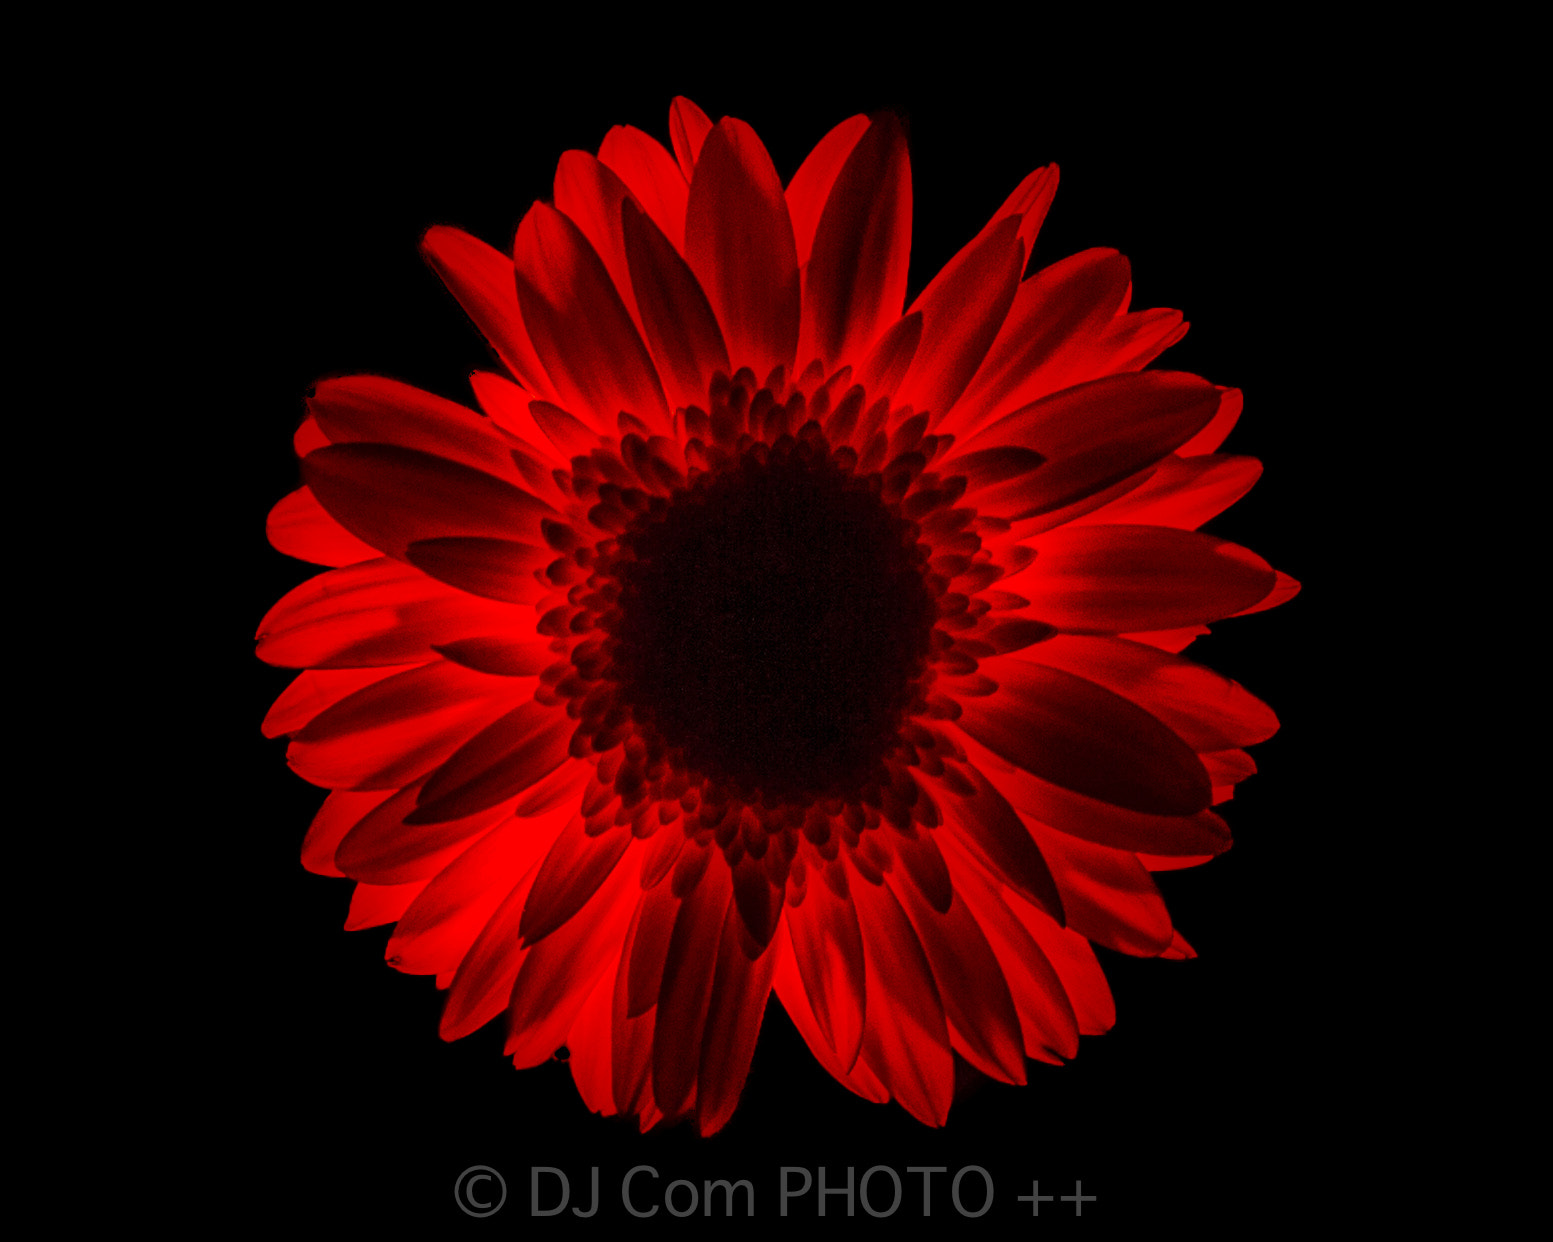 Photograph Incandescent flower by Dana Comanean on 500px